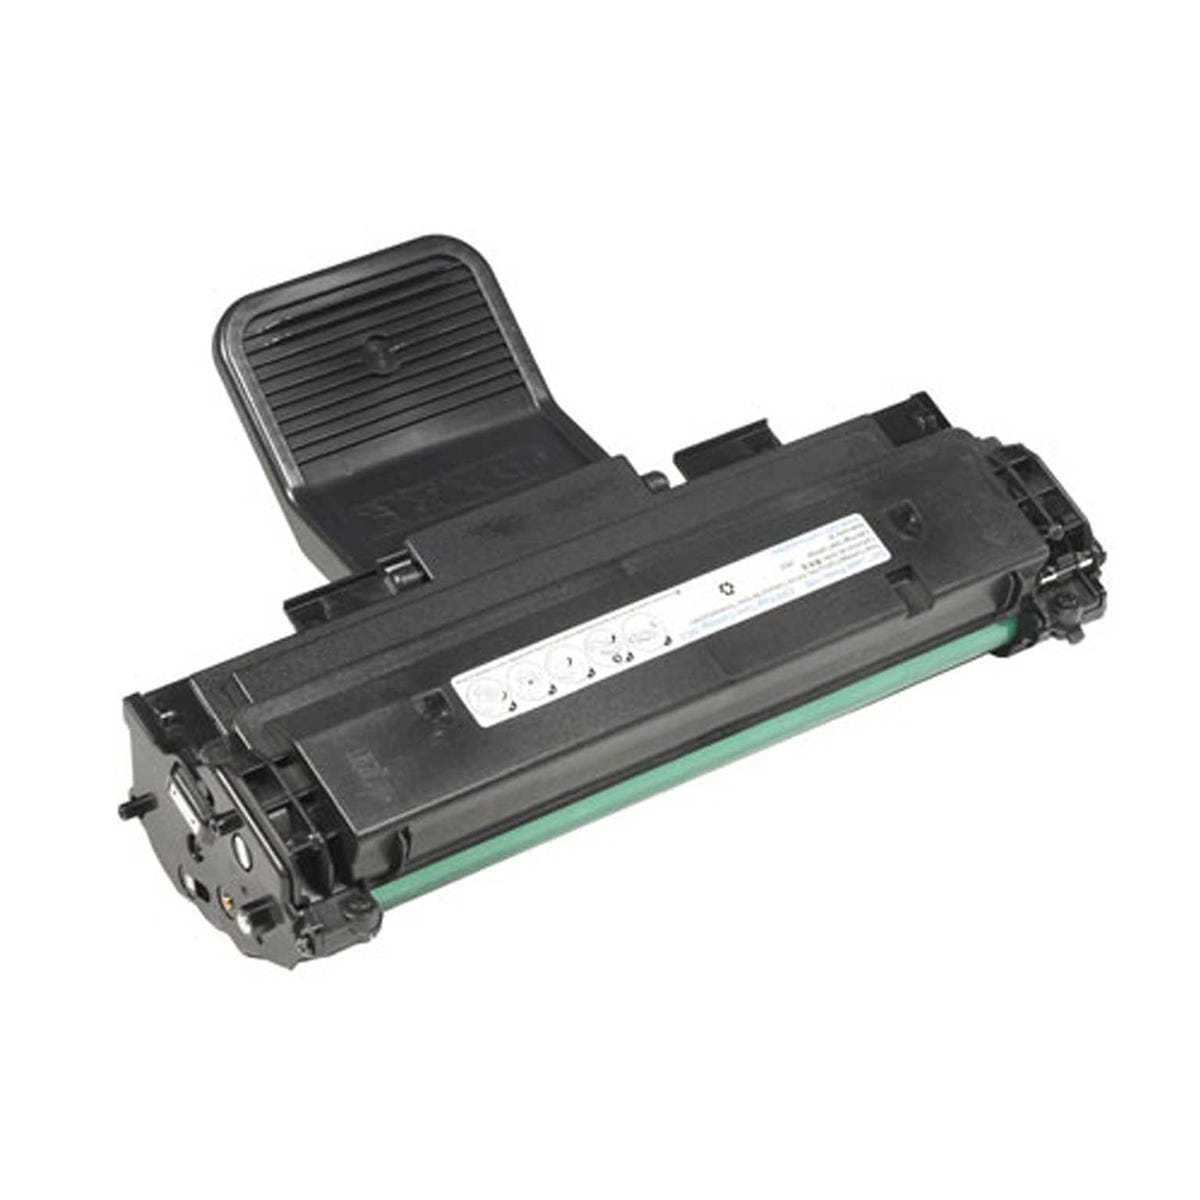 Dell J9833 Printer Ink Toner Cartridge 593-10109, Black.